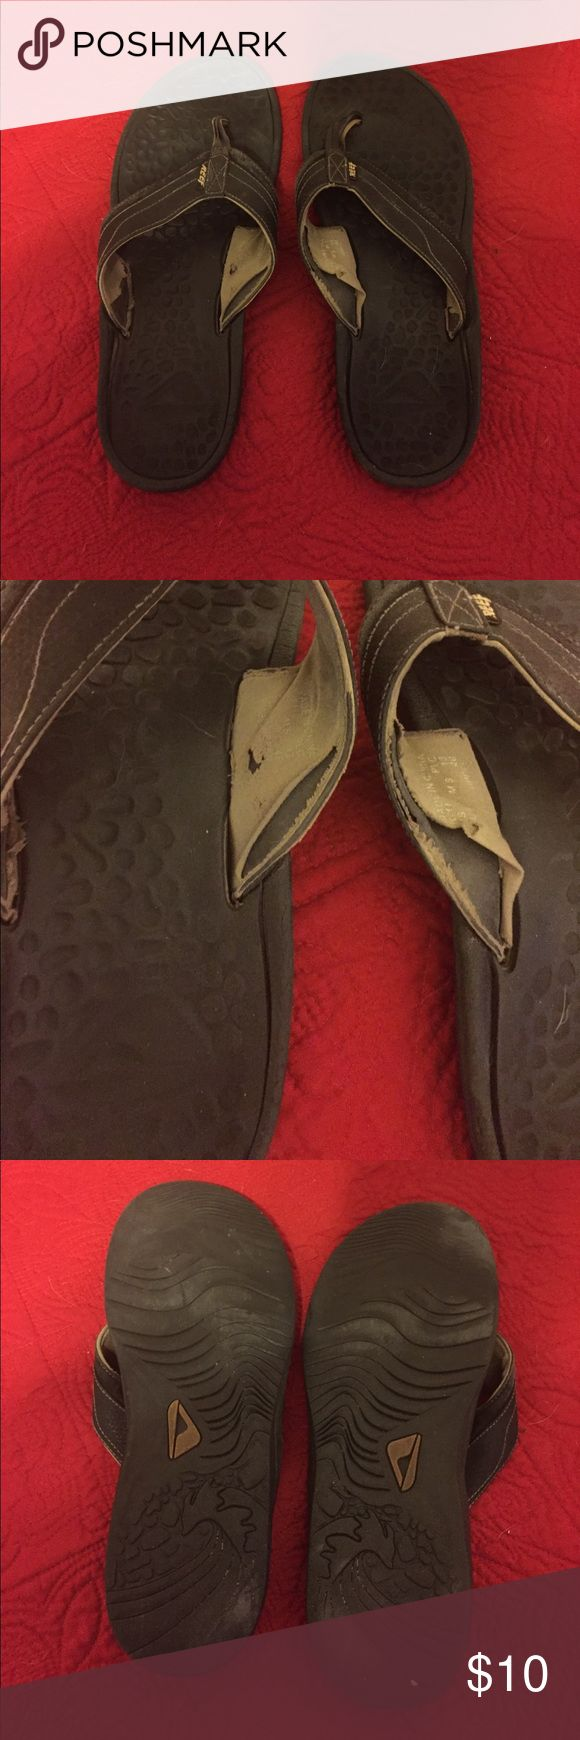 Men's Reef flip flops A little worn on the inside as shown, other than that very sturdy. Reef Shoes Sandals & Flip-Flops